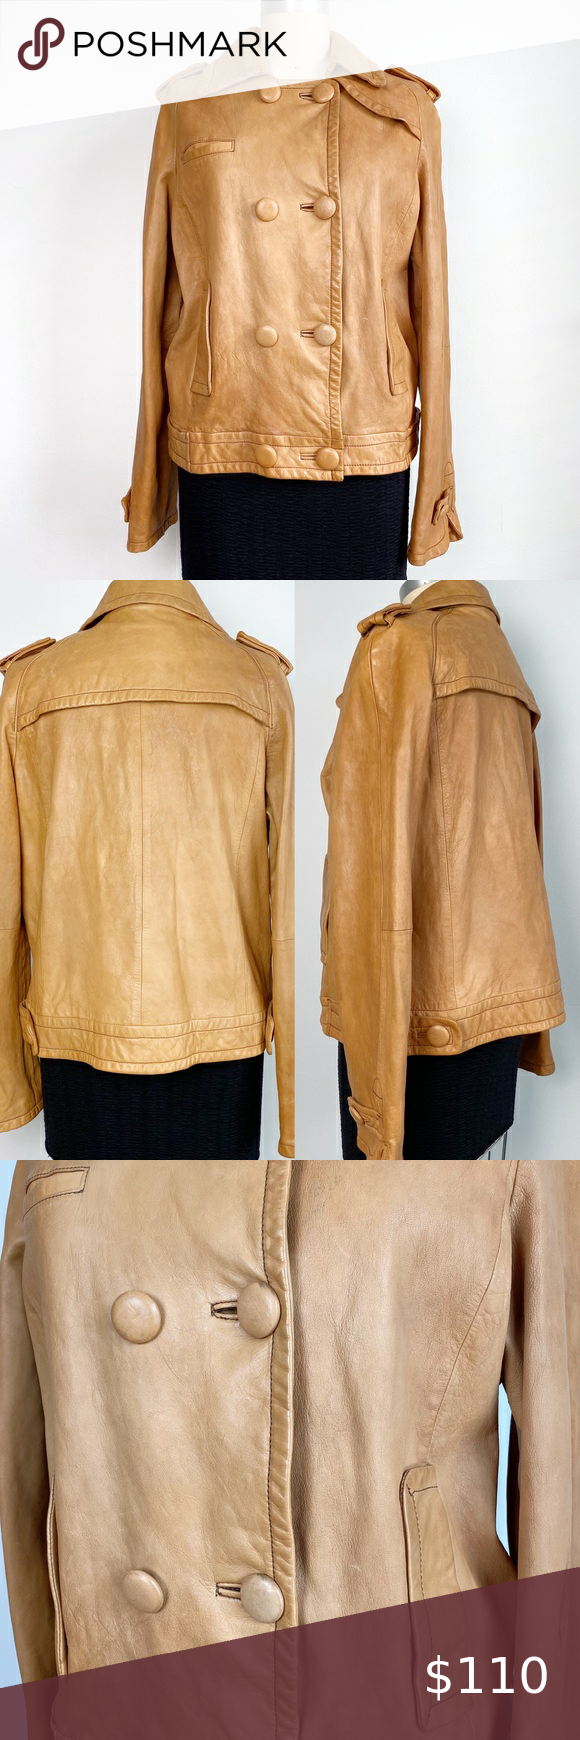 Banana Republic Cognac Leather Jacket in 2020 Leather